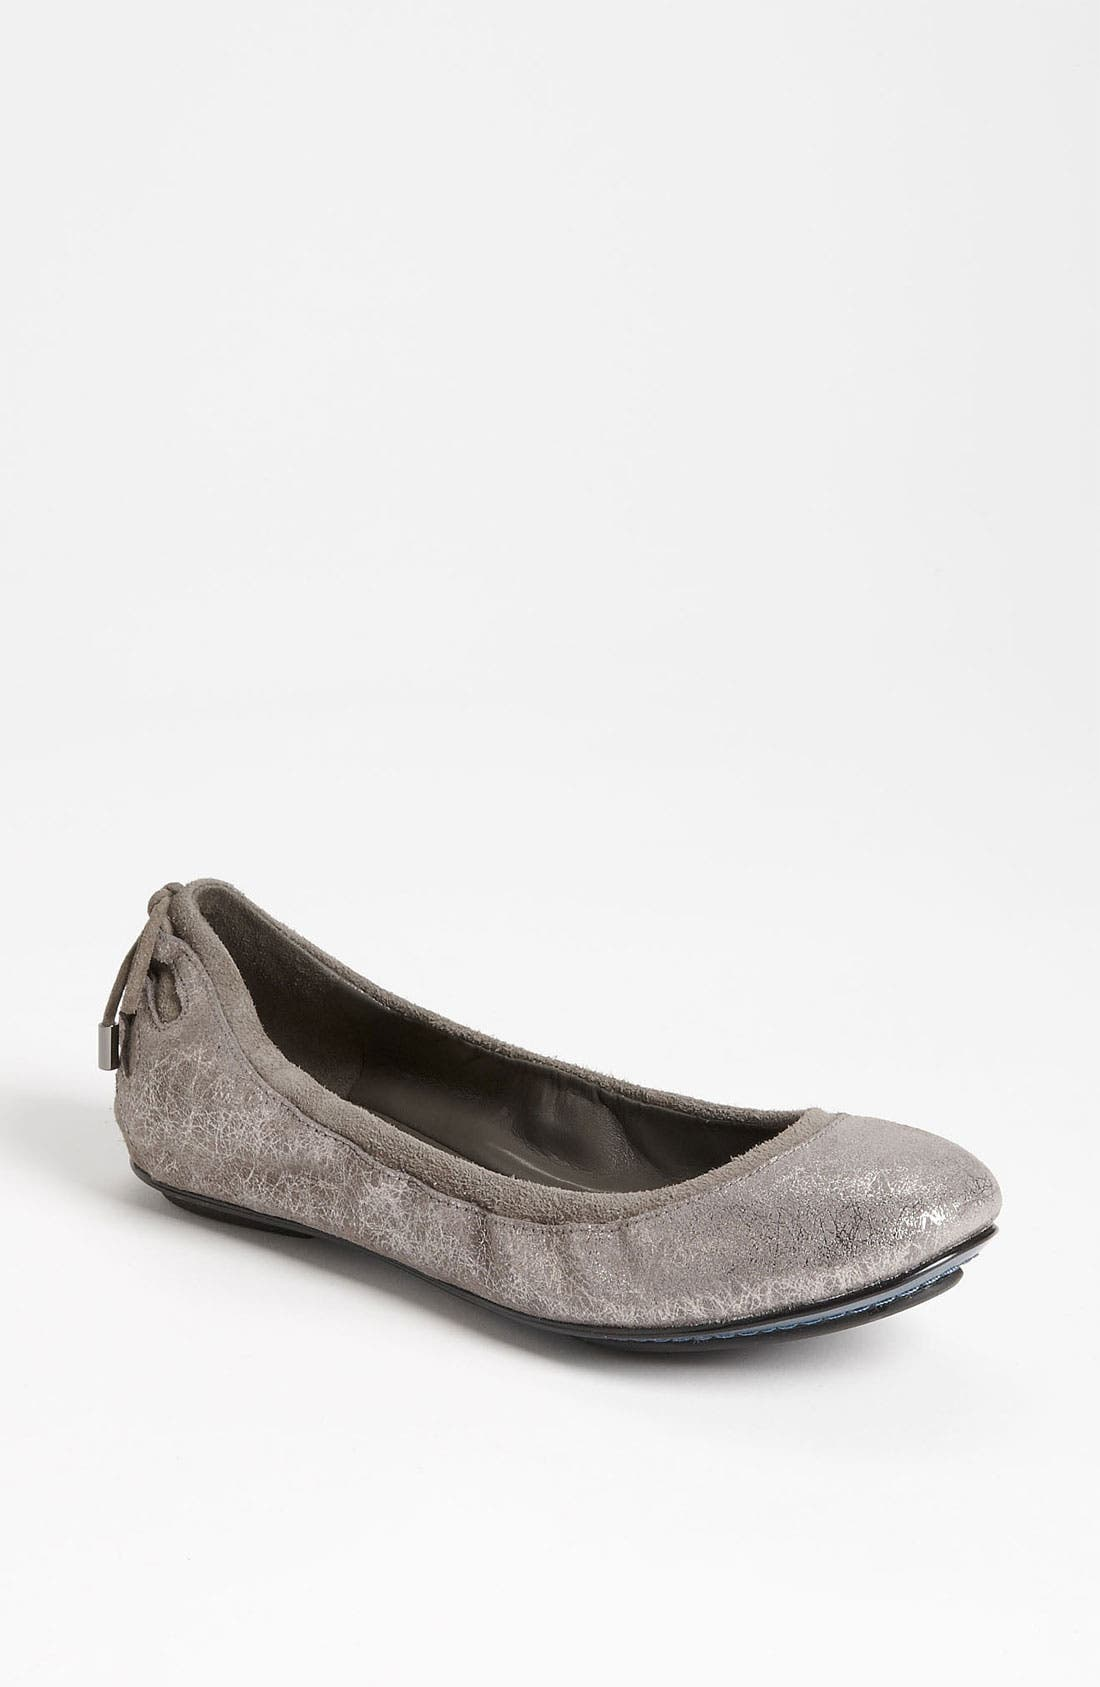 ,                             Maria Sharapova by Cole Haan 'Air Bacara' Flat,                             Main thumbnail 9, color,                             021